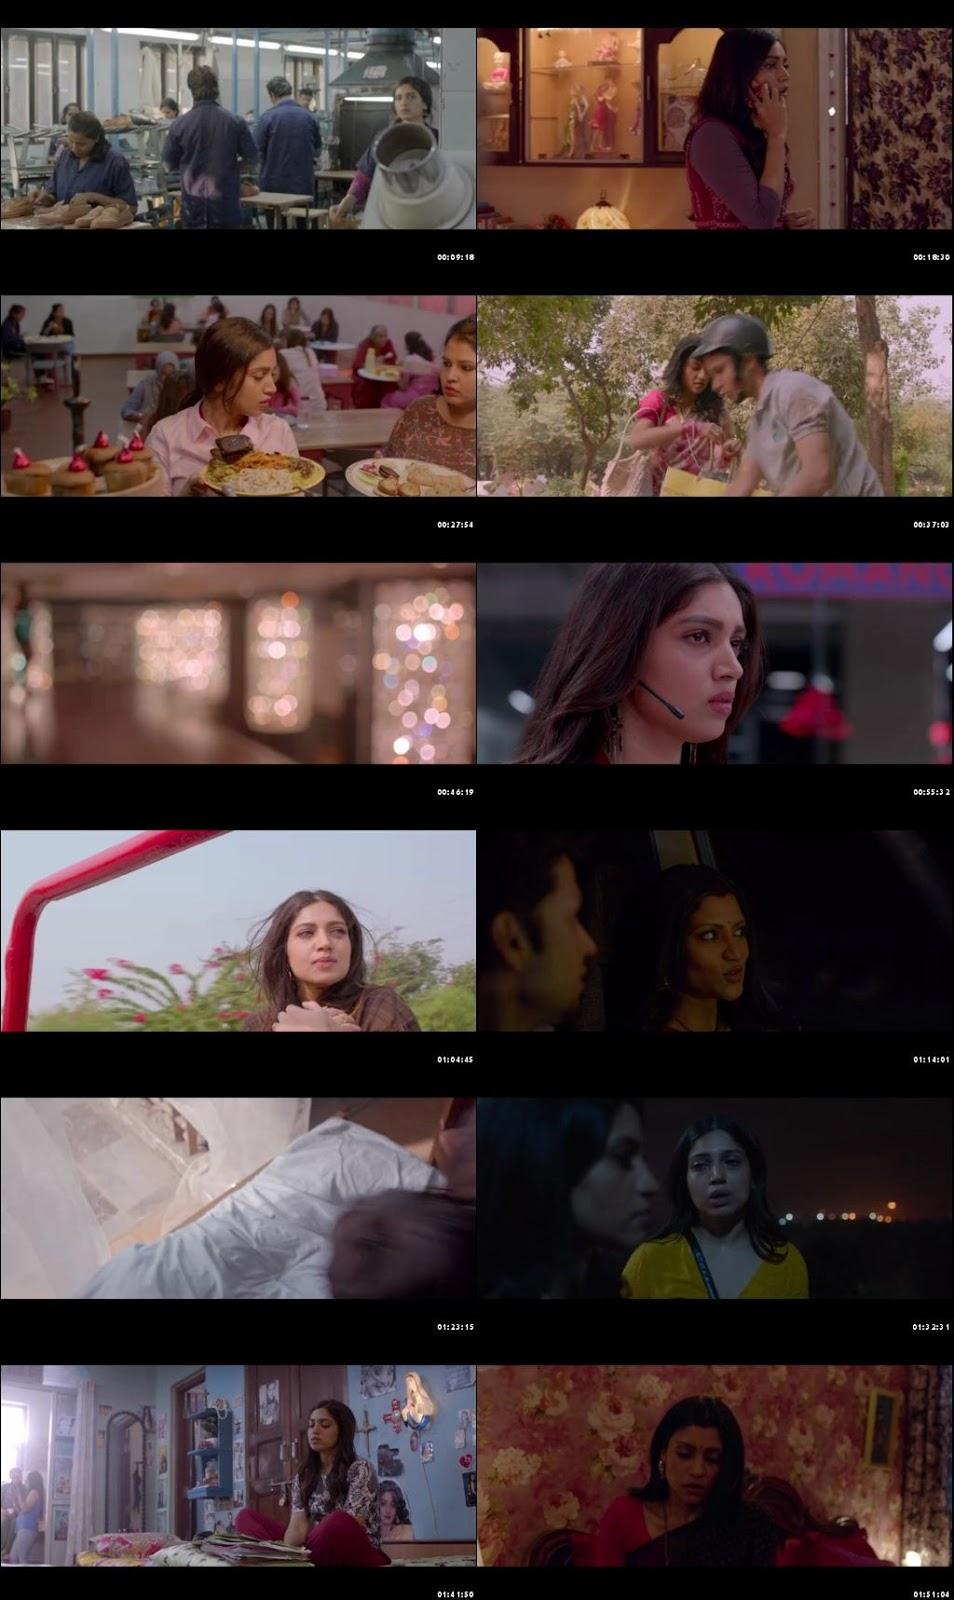 Dolly Kitty Aur Woh Chamakte Sitare 2020 HDRip 720p [Hindi - English]